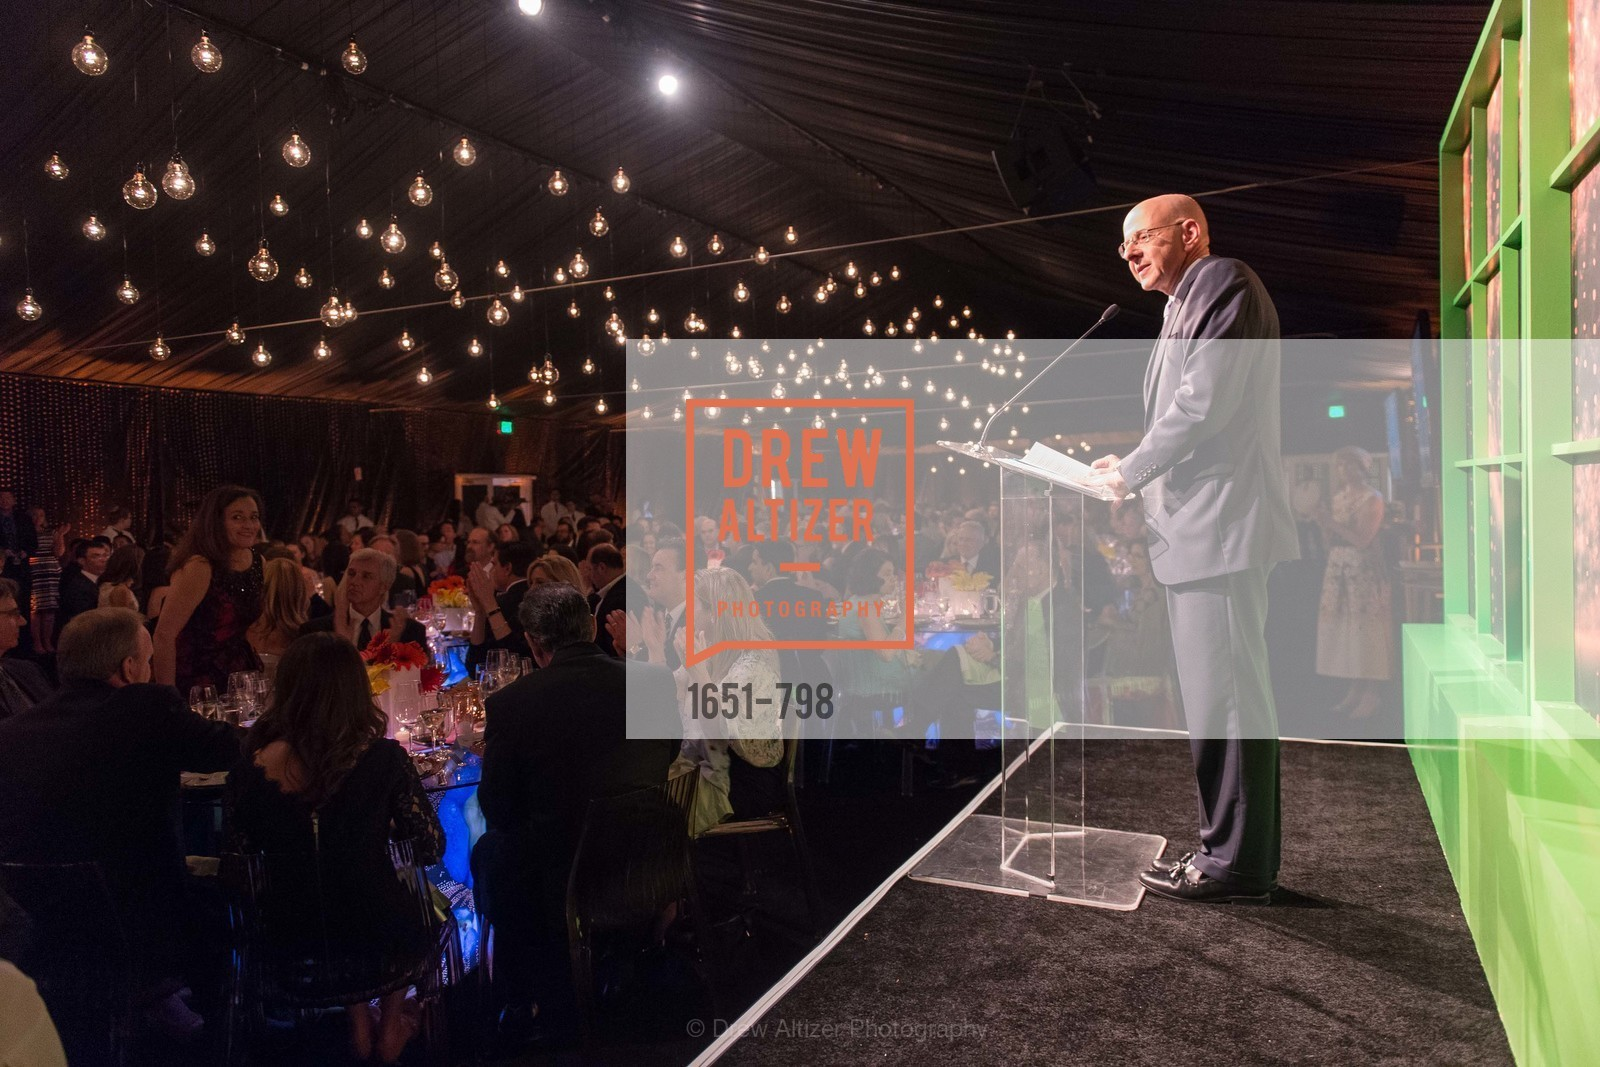 Jerome Vascellaro, CALIFORNIA ACADEMY OF SCIENCES - Big Bang Gala 2015, US, April 24th, 2015,Drew Altizer, Drew Altizer Photography, full-service agency, private events, San Francisco photographer, photographer california